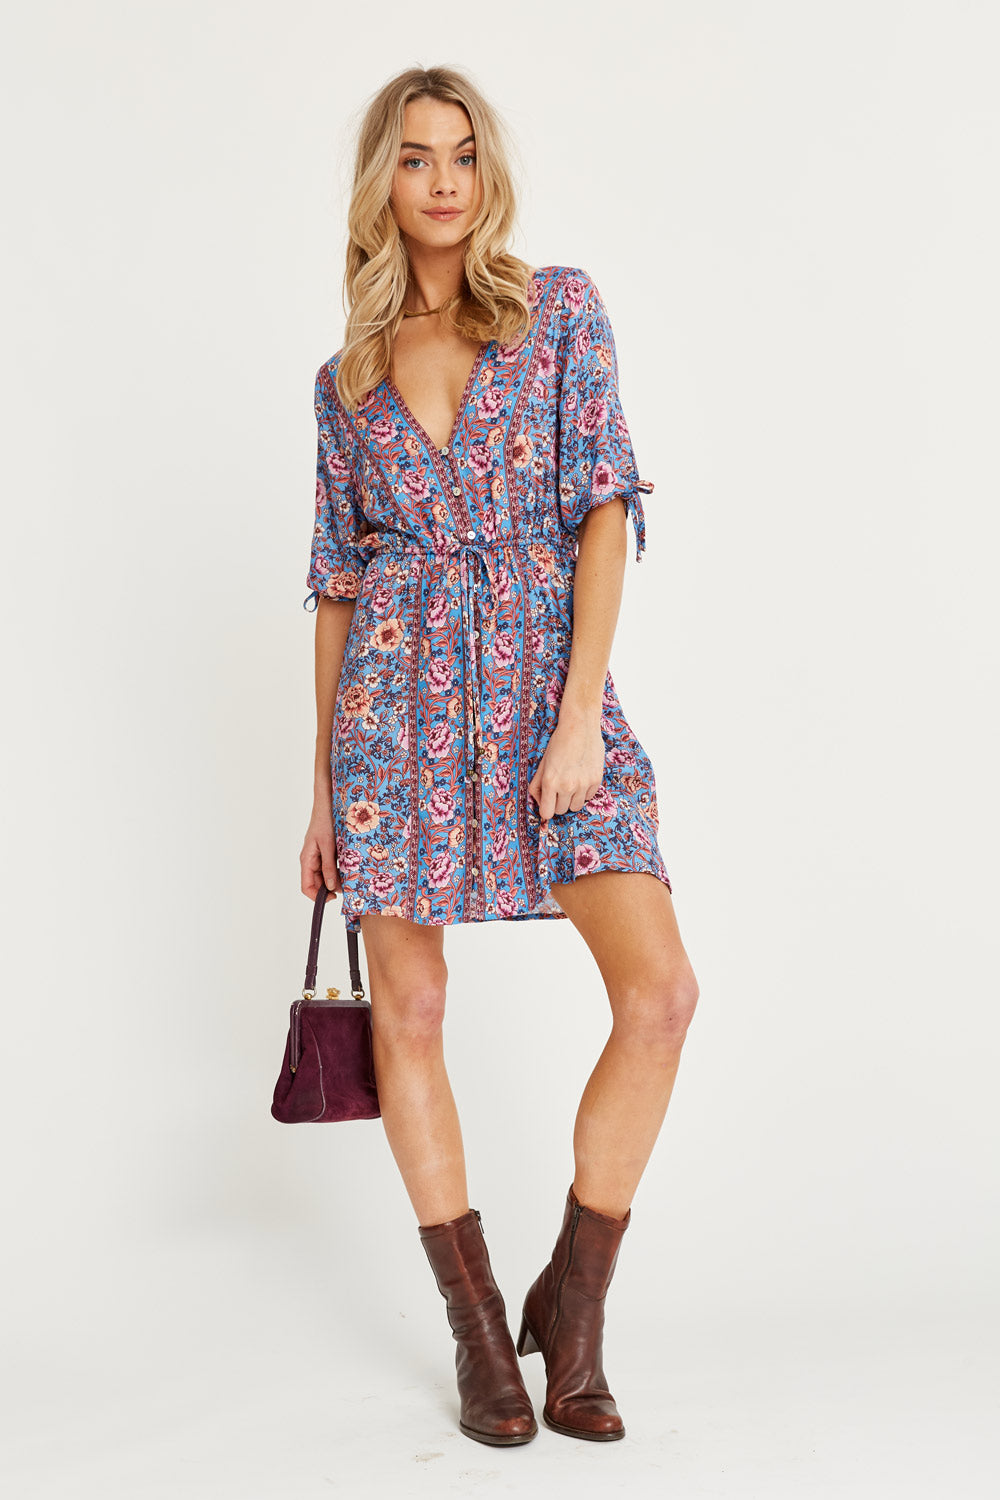 Juliette Mini Dress in Bluebelle